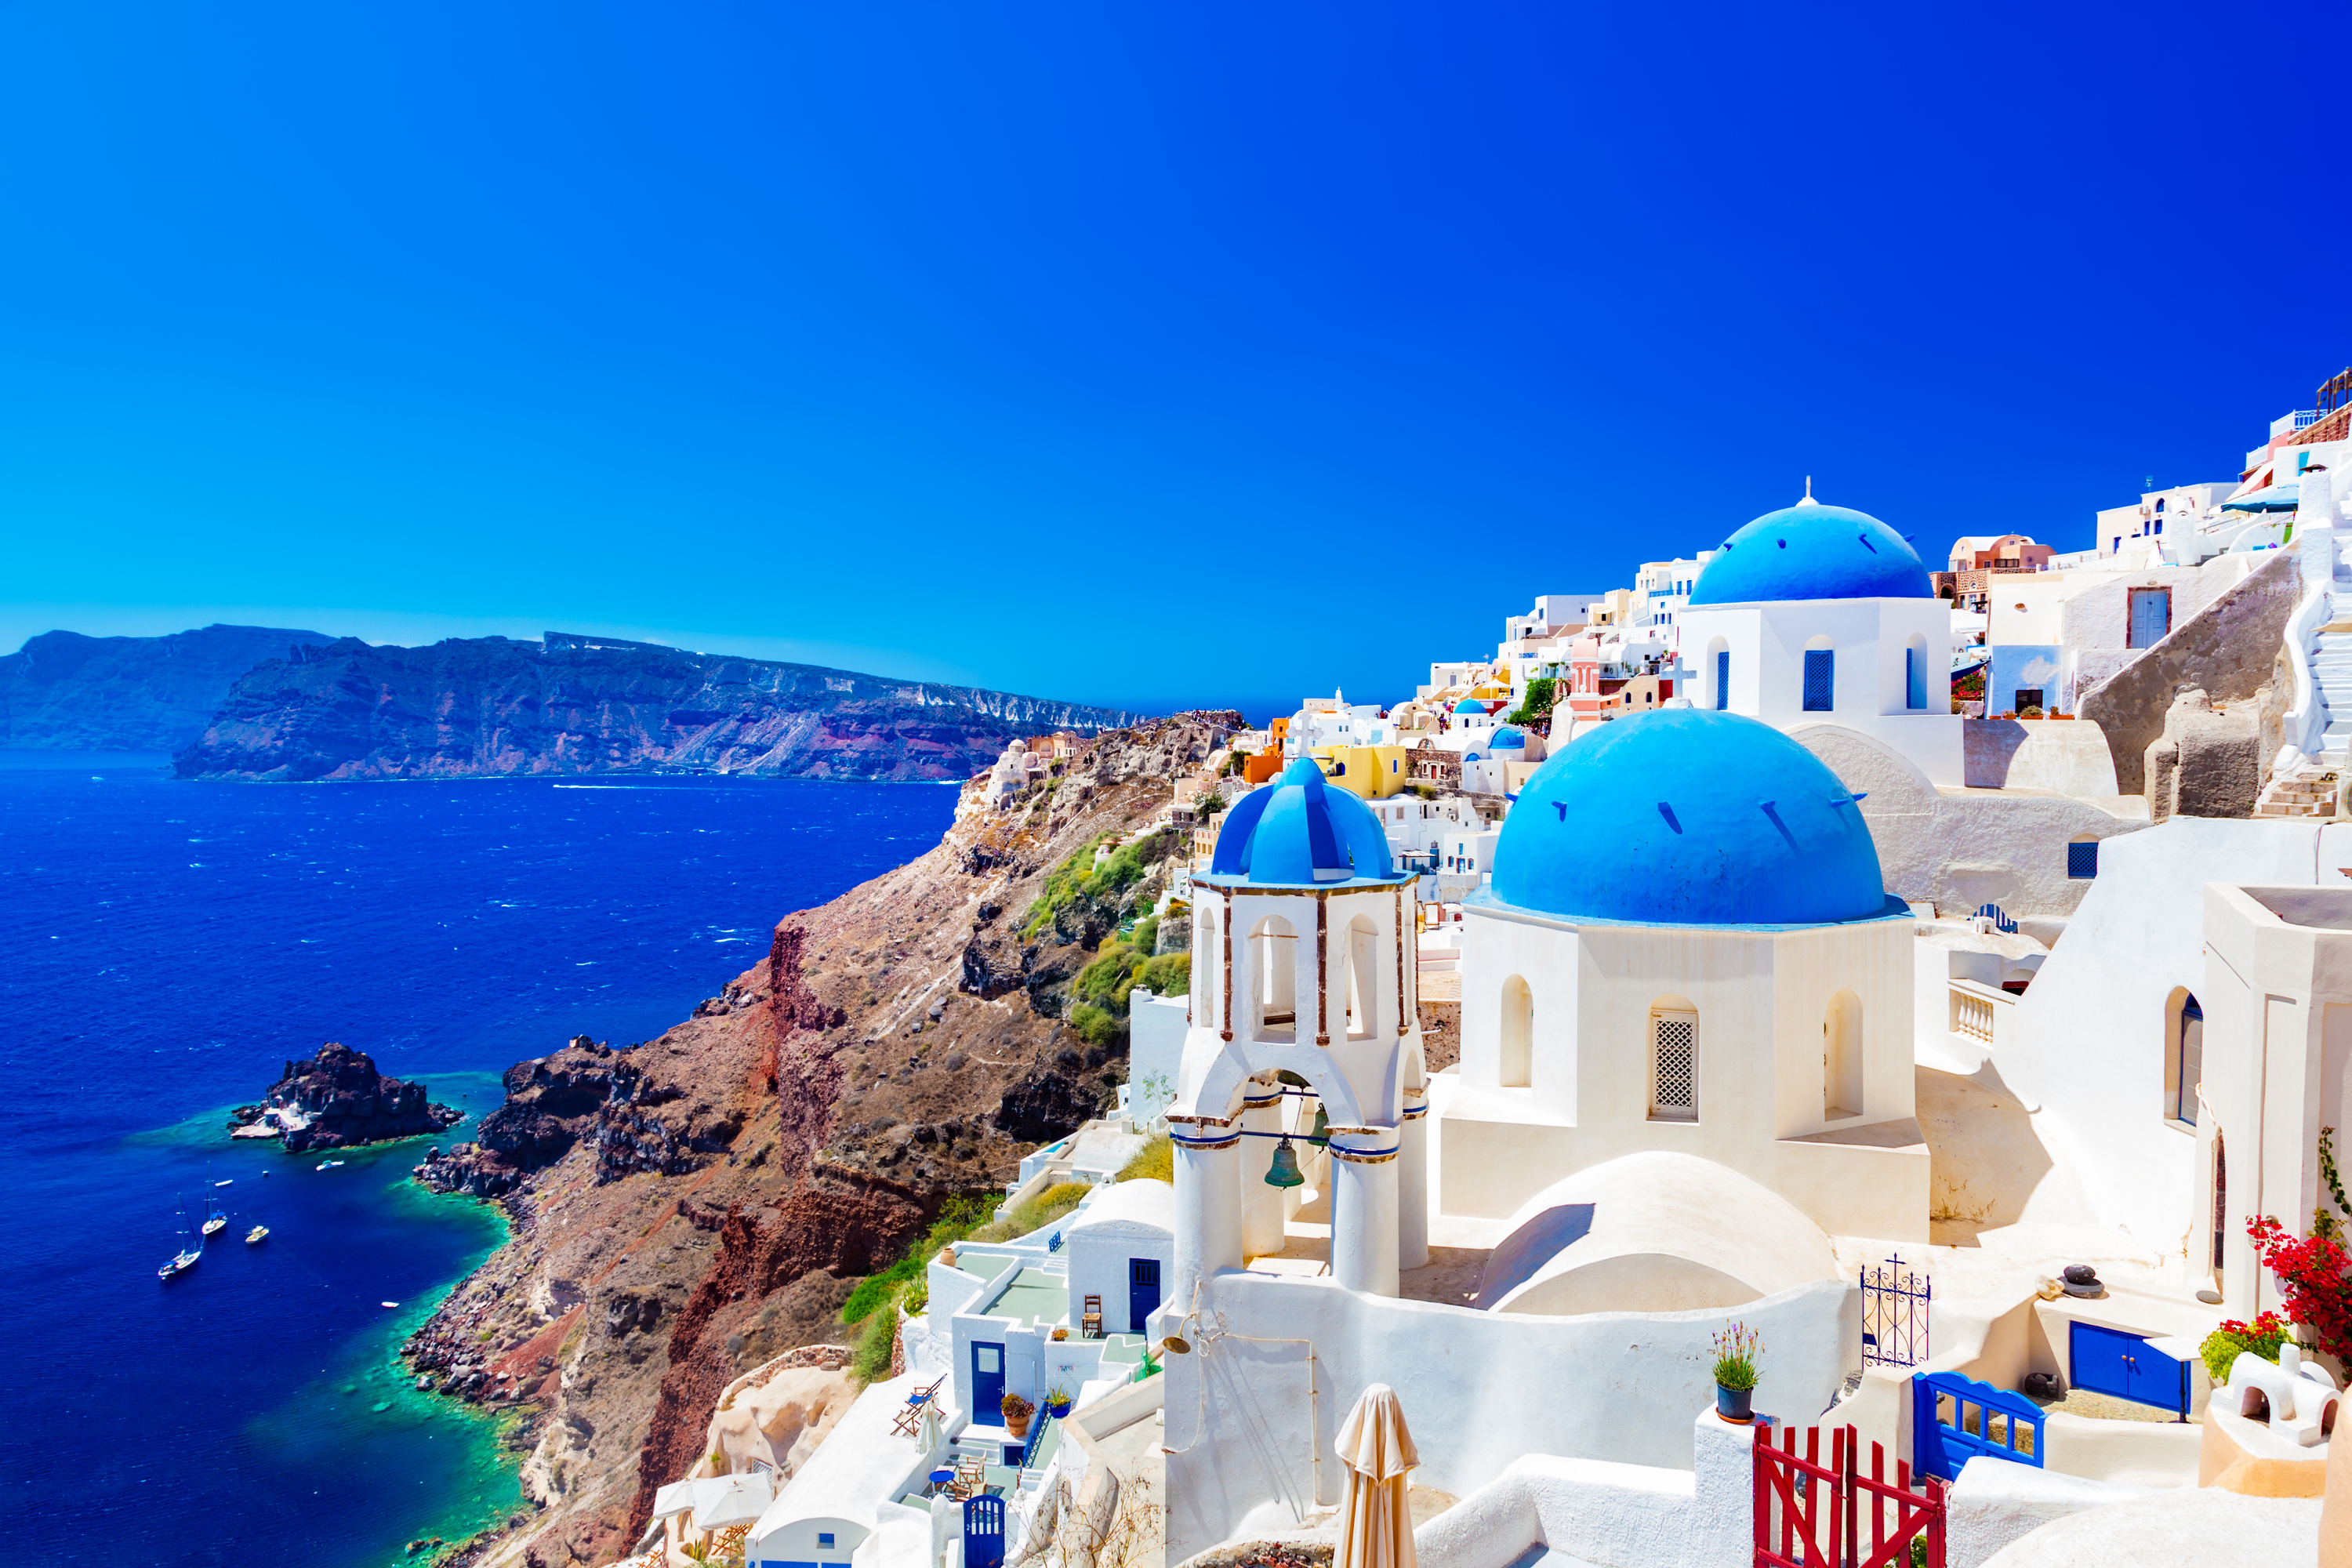 There is nothing like the beautiful islands of Greece. If you're planning a vacation to the Greek Islands, here's everything you need to know to make the most of your trip.